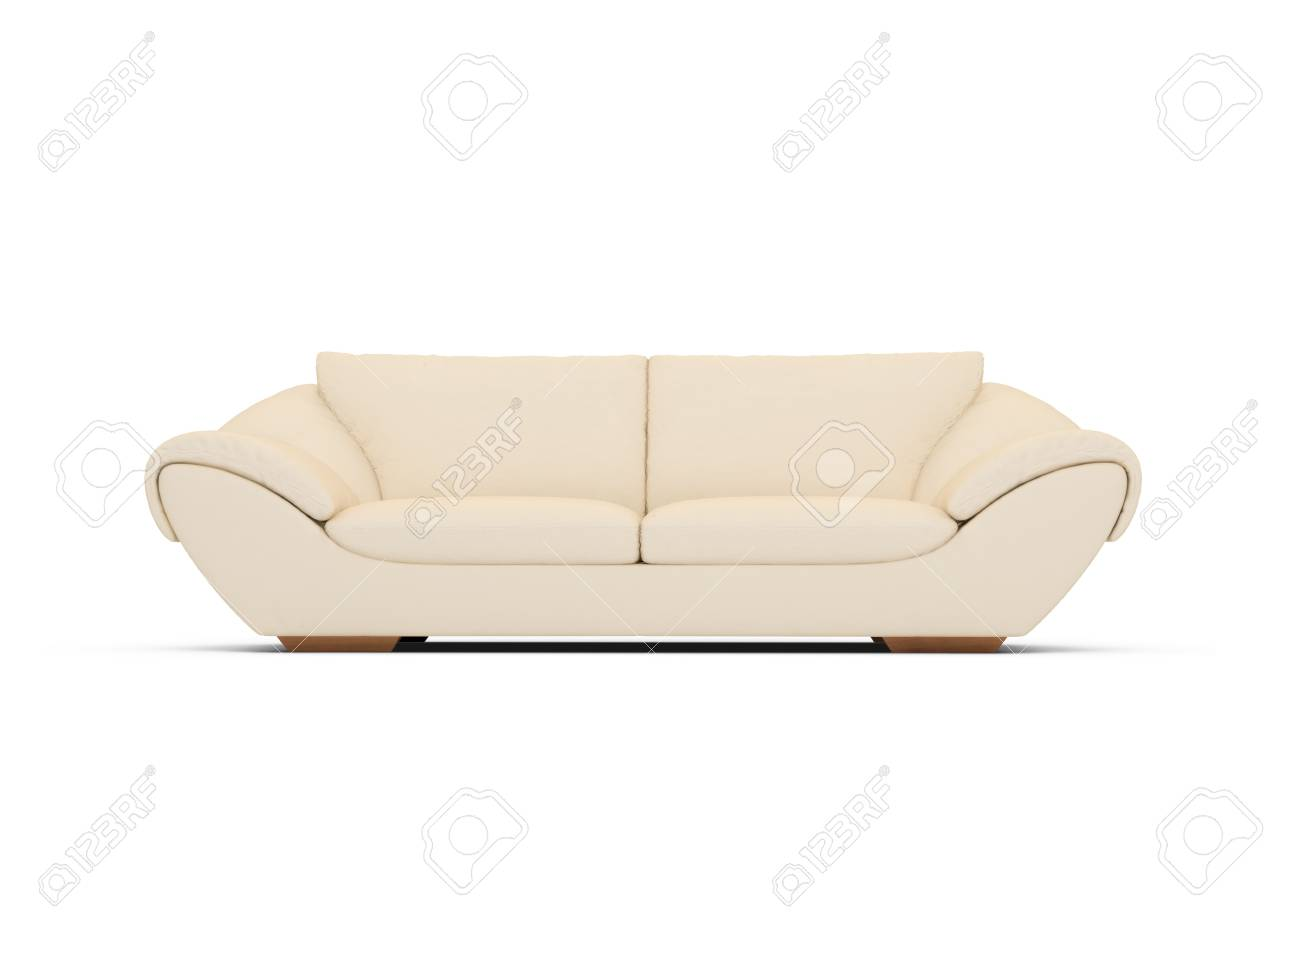 isolated couch over white background Stock Photo - 4684271